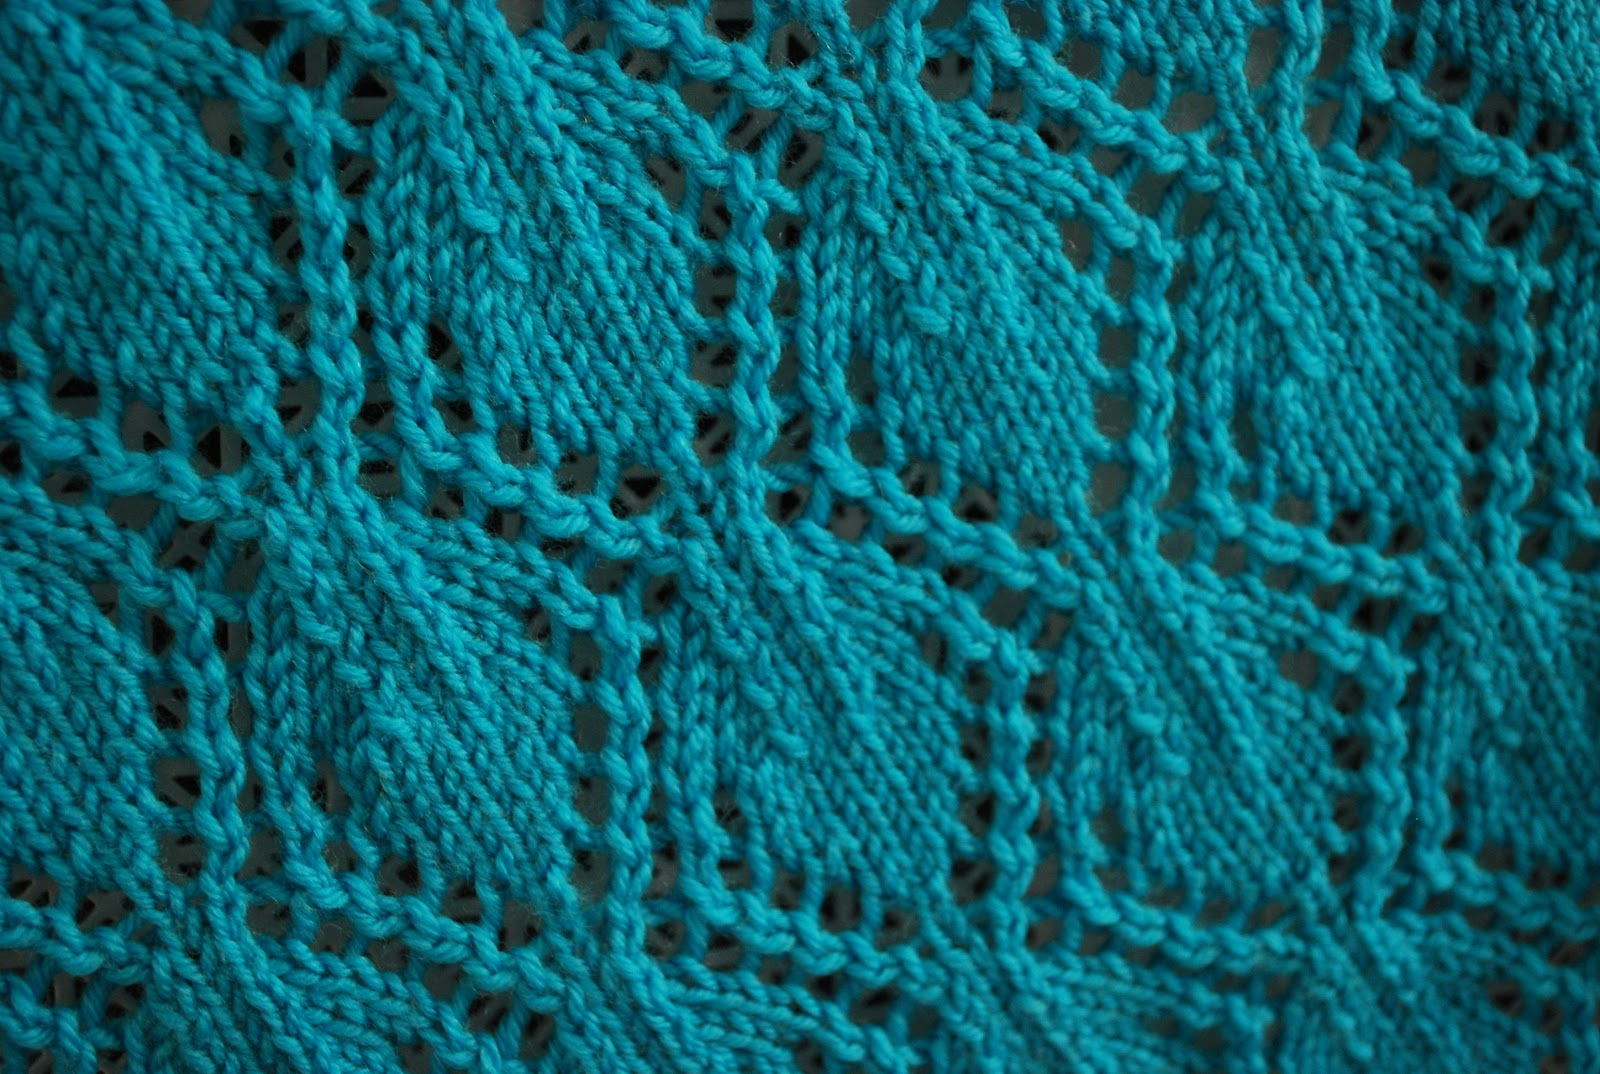 Knit/Wit: March 2012